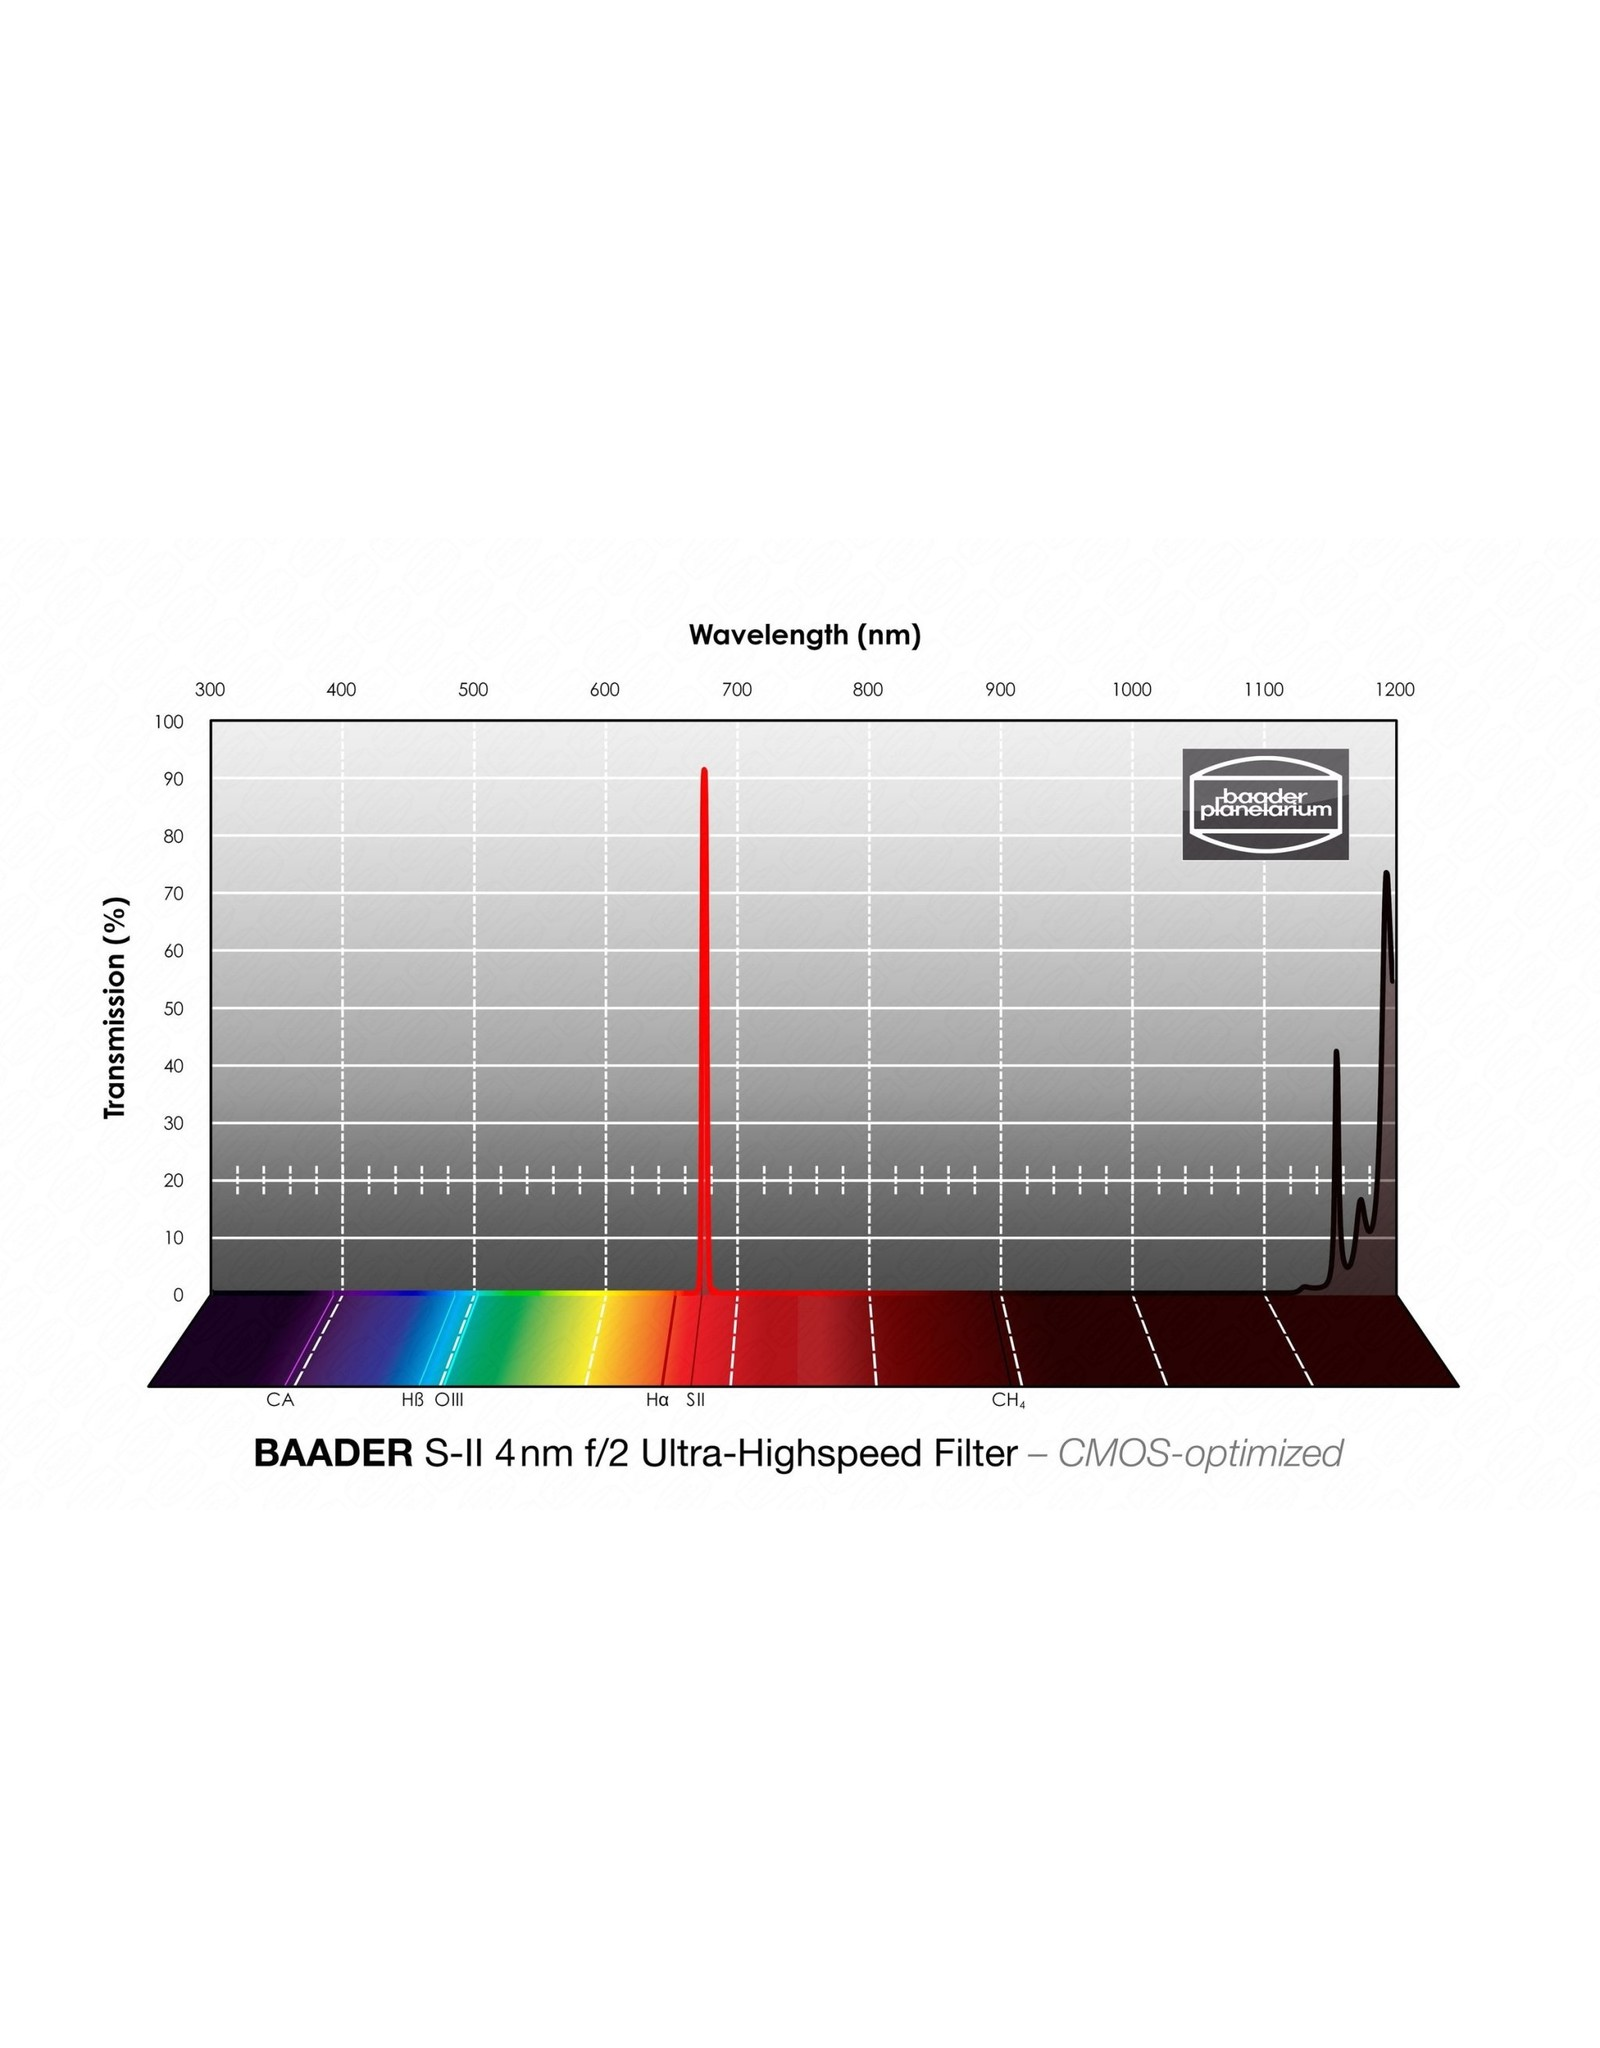 Baader Planetarium Baader 3.5nm f/2 Ultra-Highspeed H-Alpha Filters – CMOS-optimized (Specify Size)